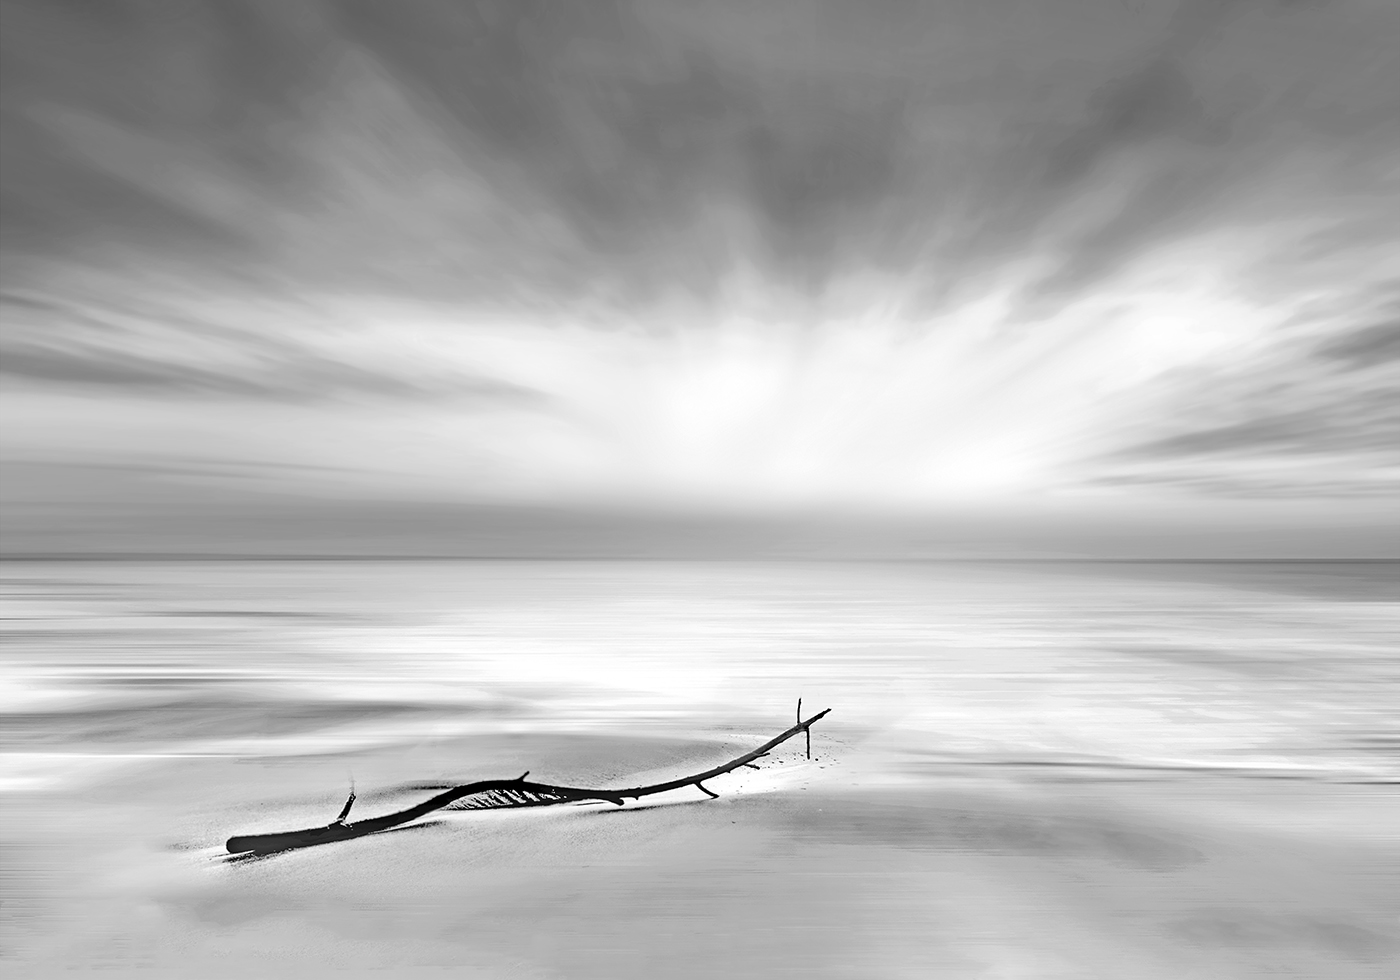 Driftwood by Gerry Priest